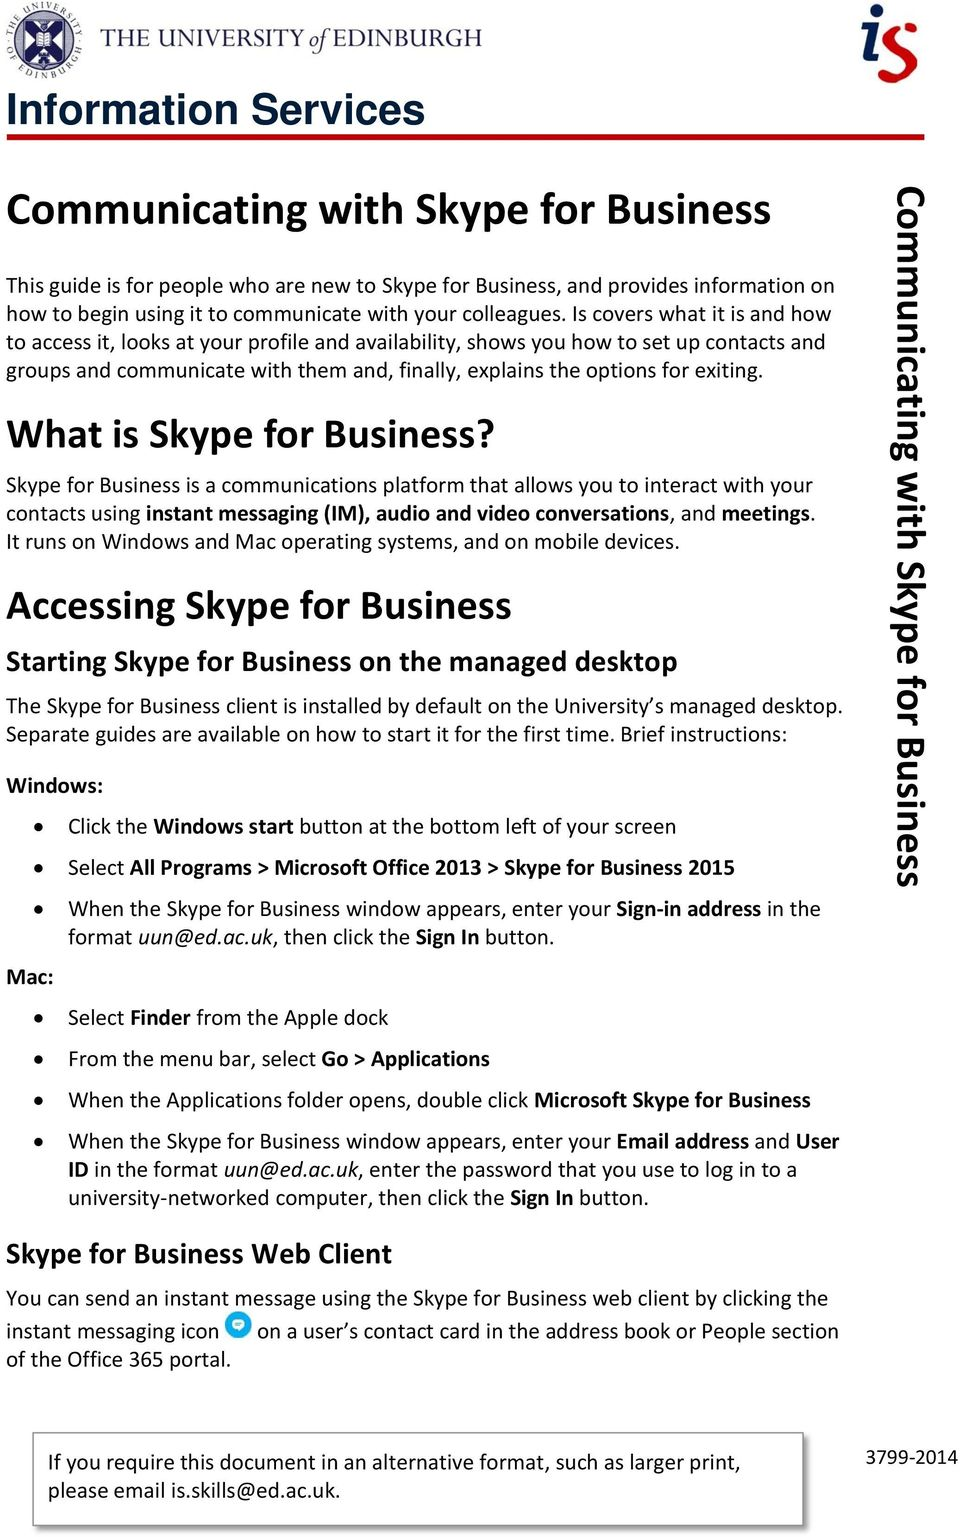 Communicating with Skype for Business - PDF